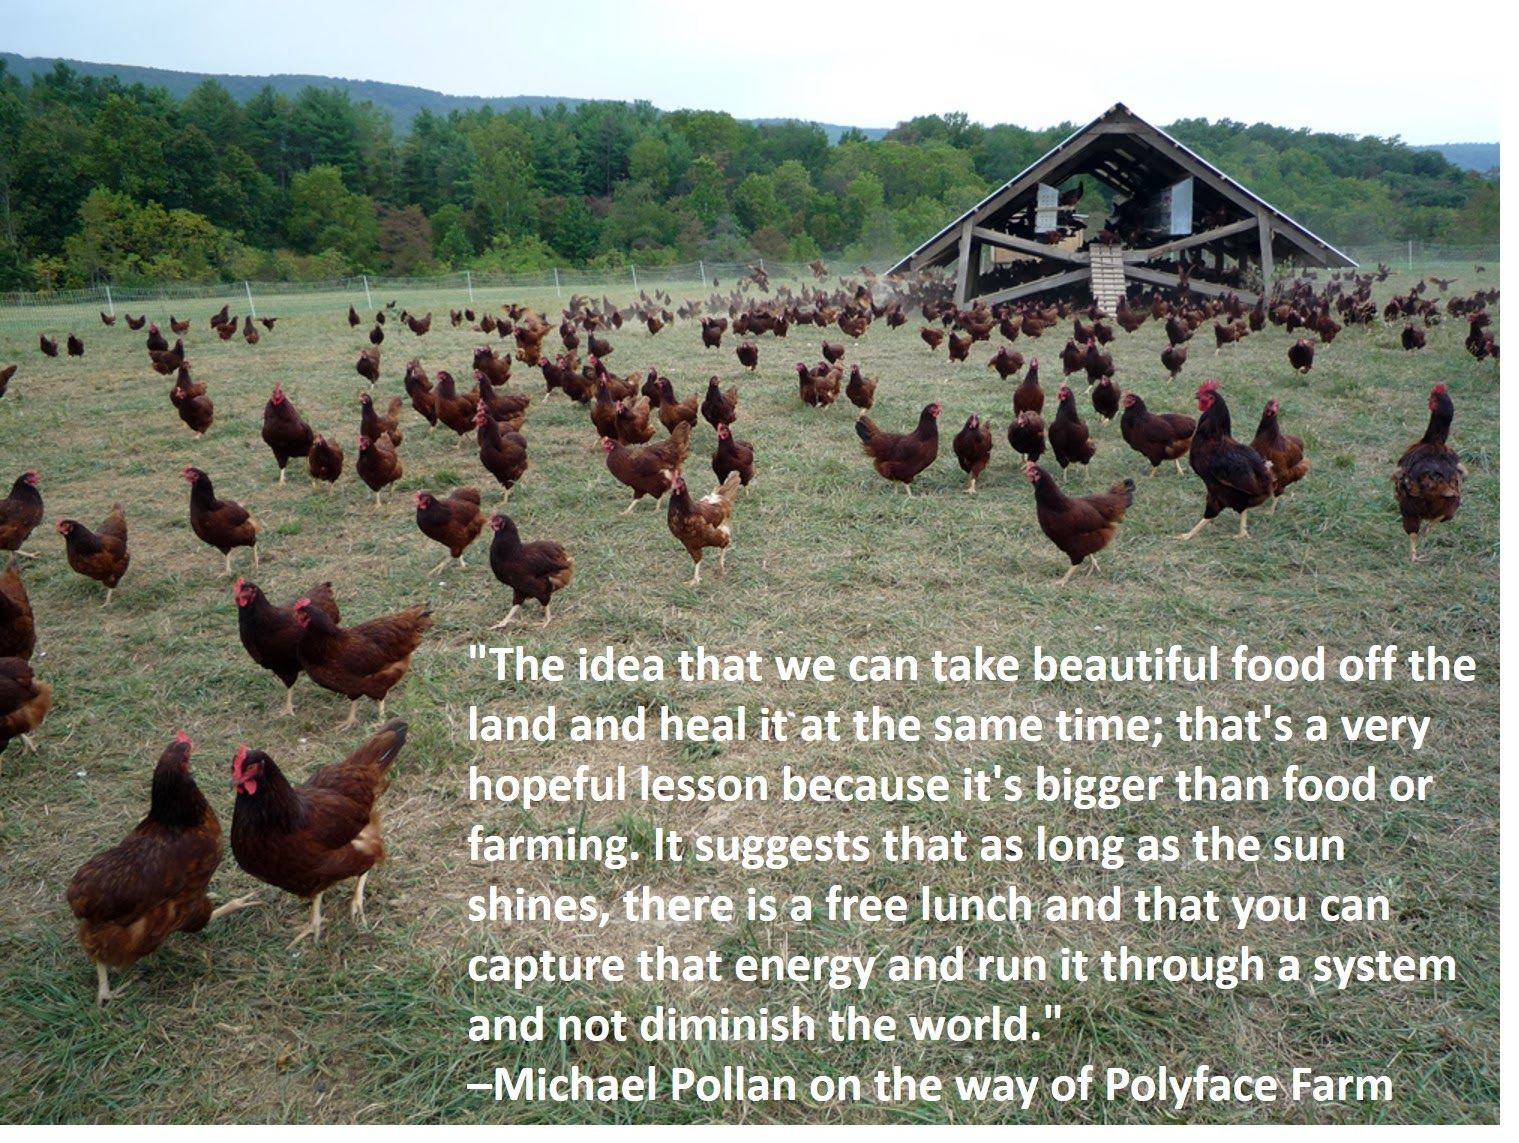 Quotes About Raising Chickens: Michael Pollan Quote About Polyface Farm